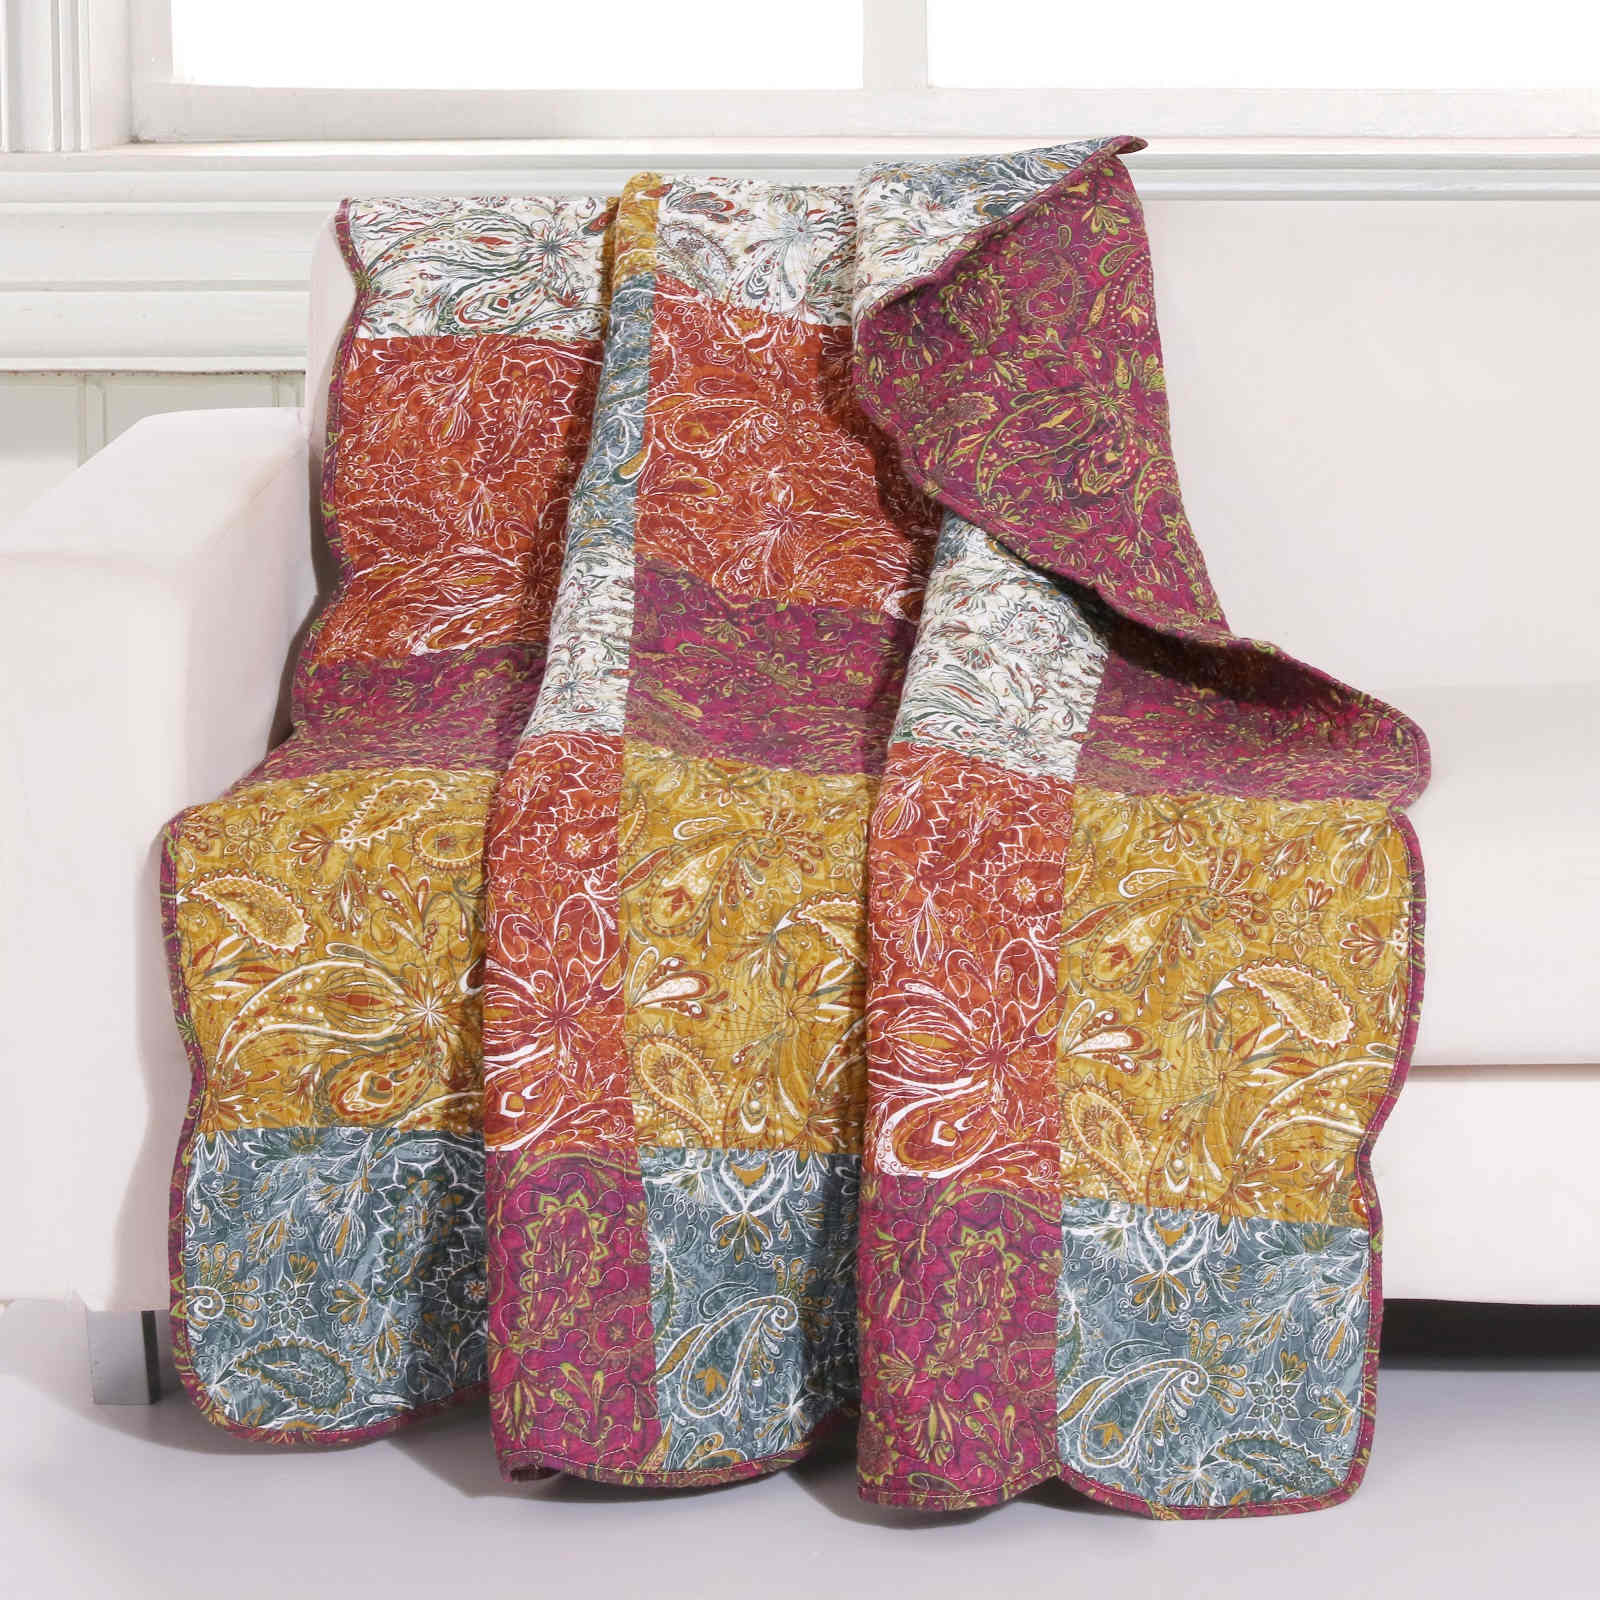 Paisley Slumber Spice Accessory Throw